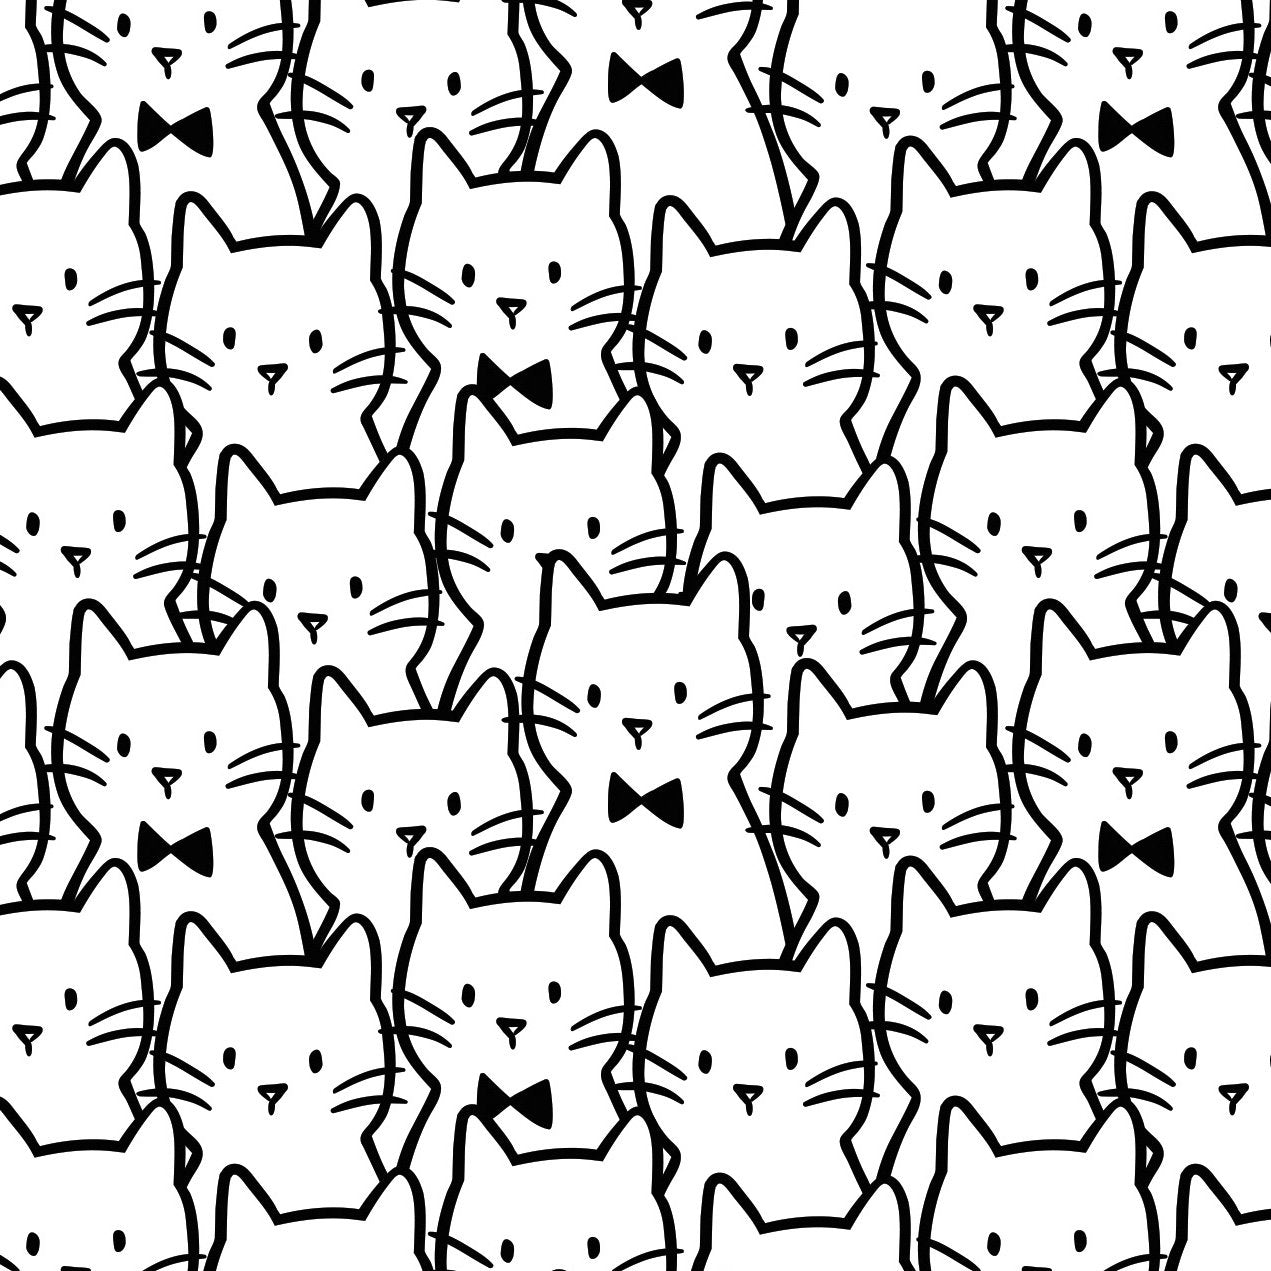 MEOW Cat Cluster white